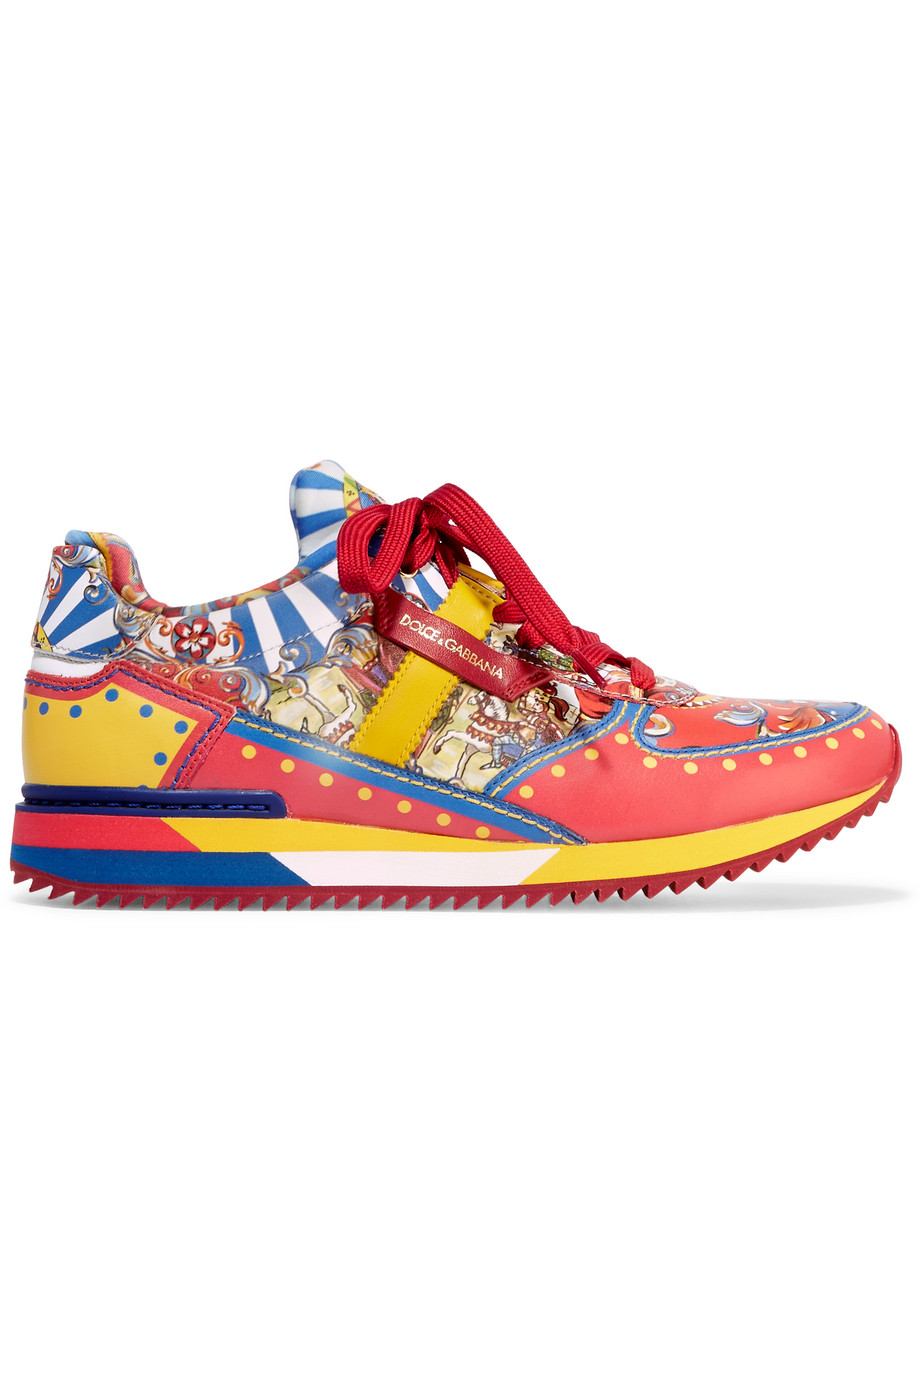 Dolce & Gabbana Printed Leather Sneakers, Red, Women's US Size: 4.5, Size: 35